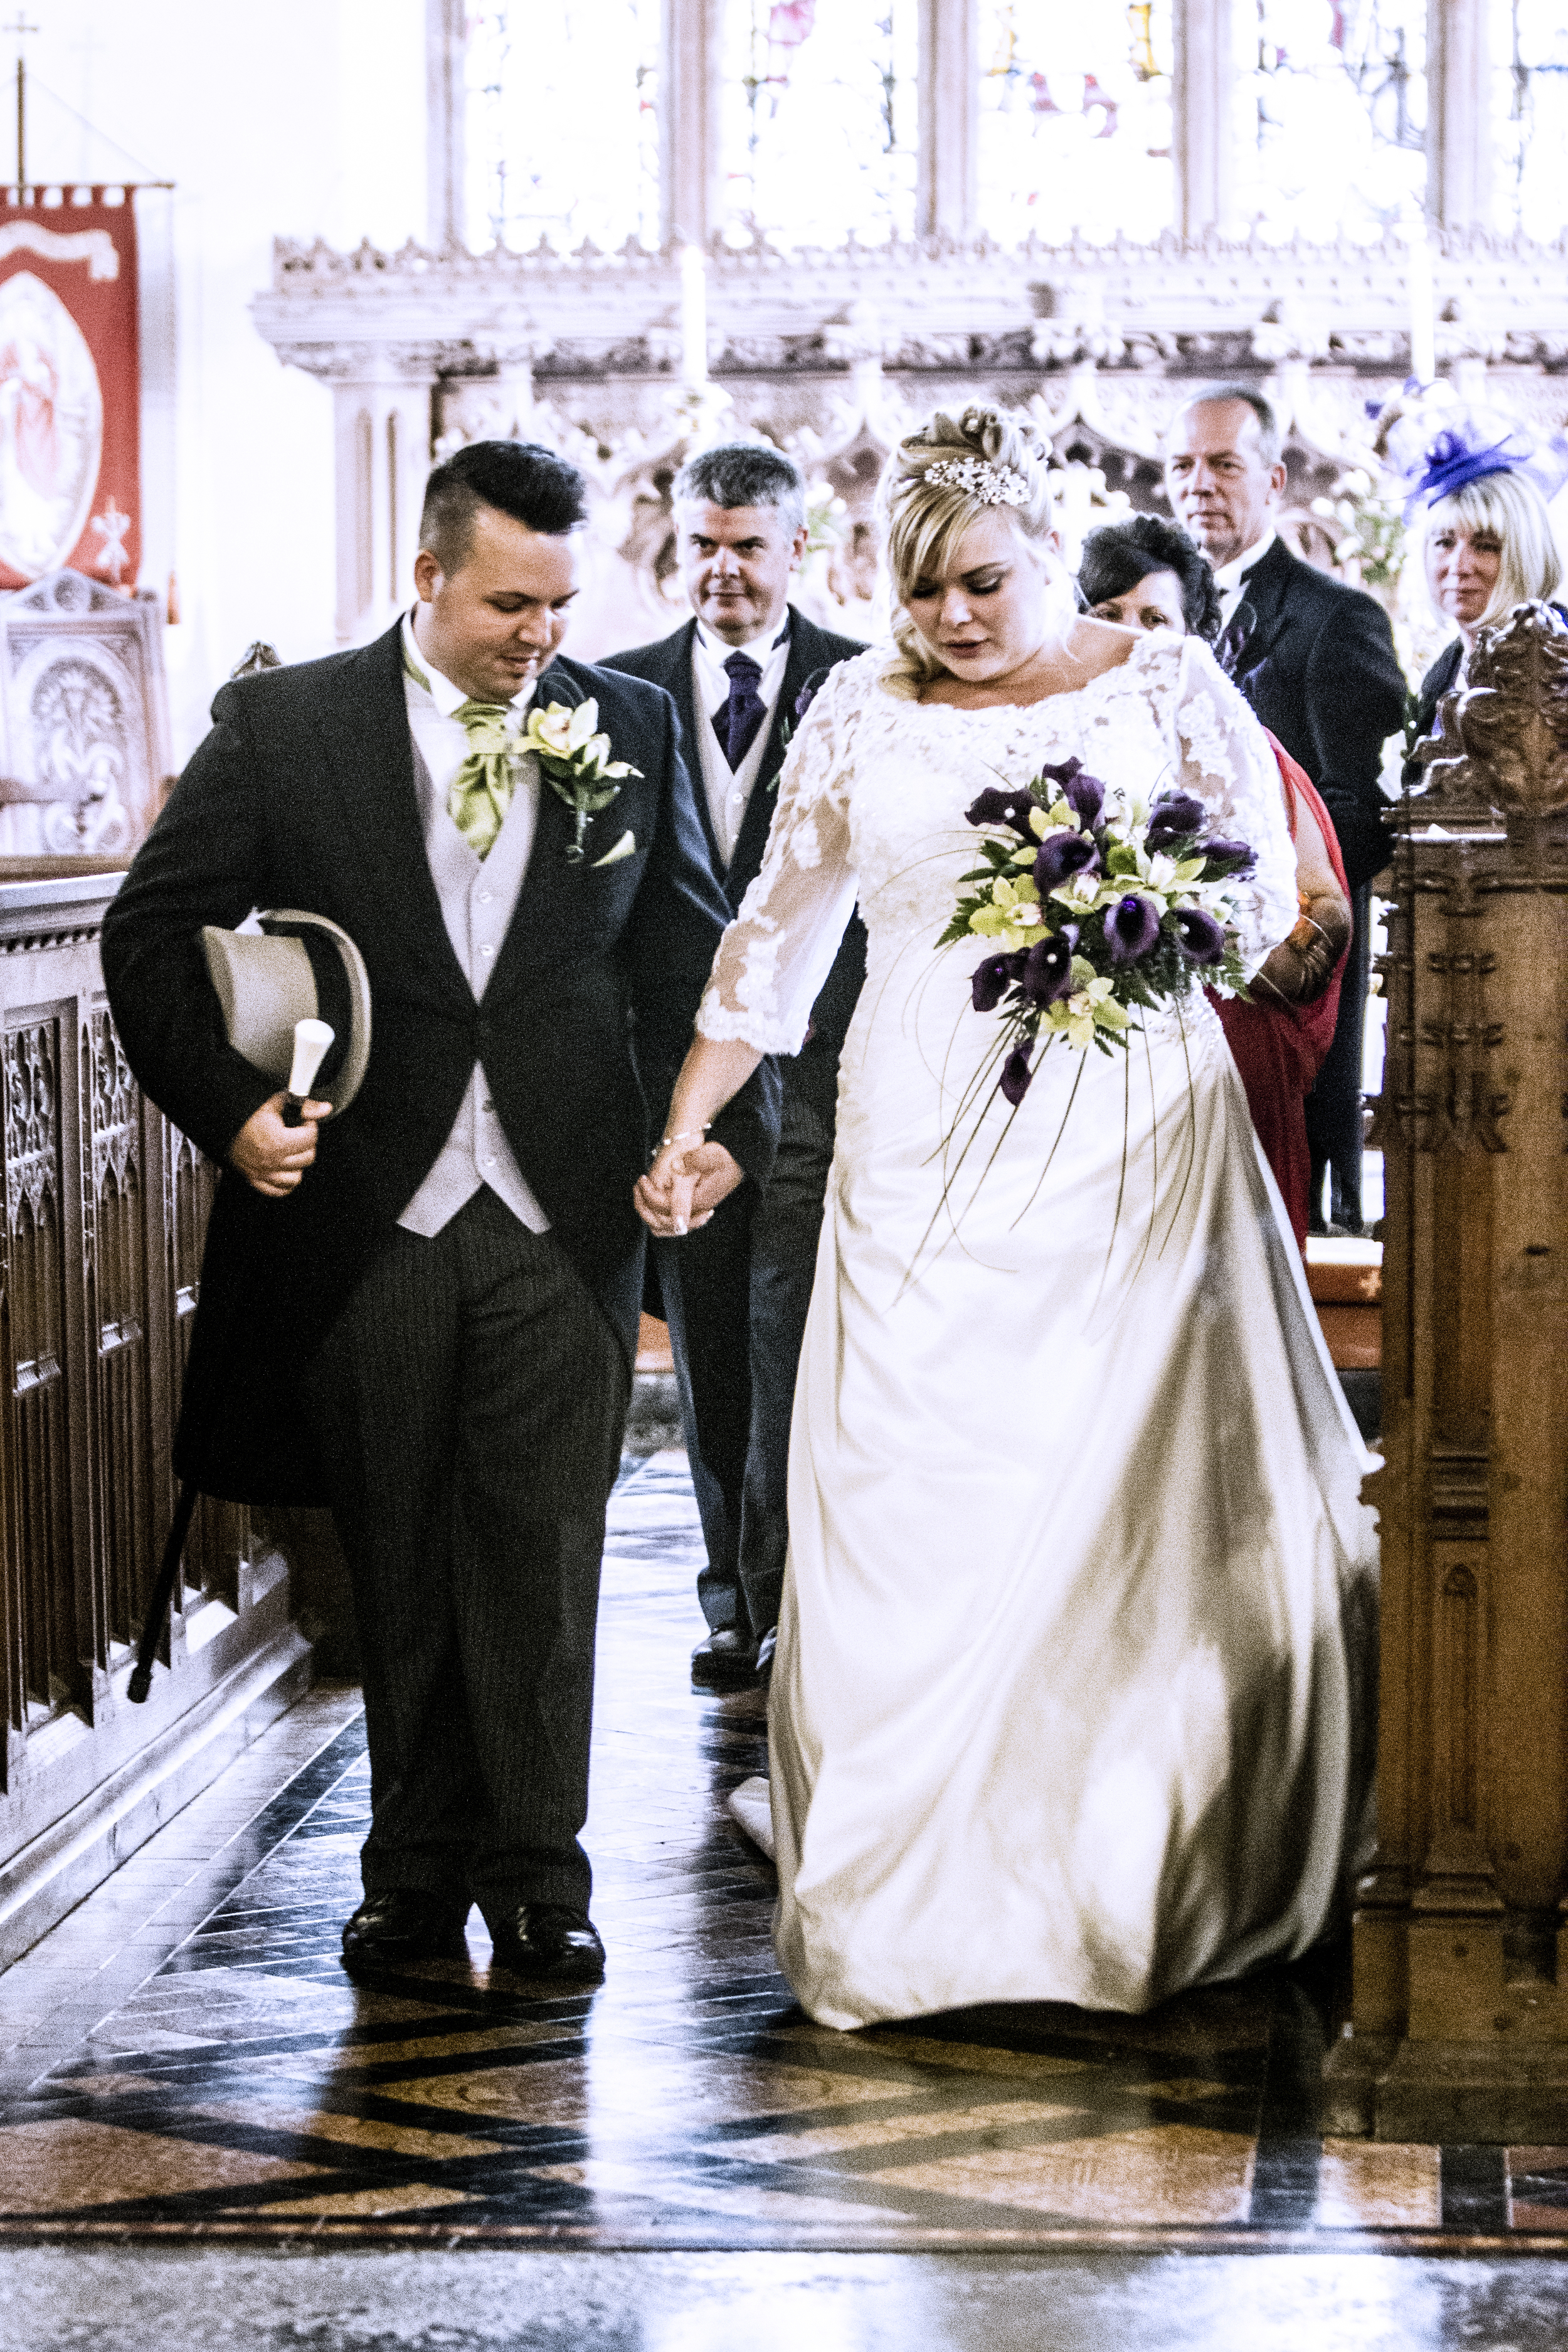 22-06-2013_Alex_Pople_Jess_Lewis_Wedding_EDITED_00010.jpg